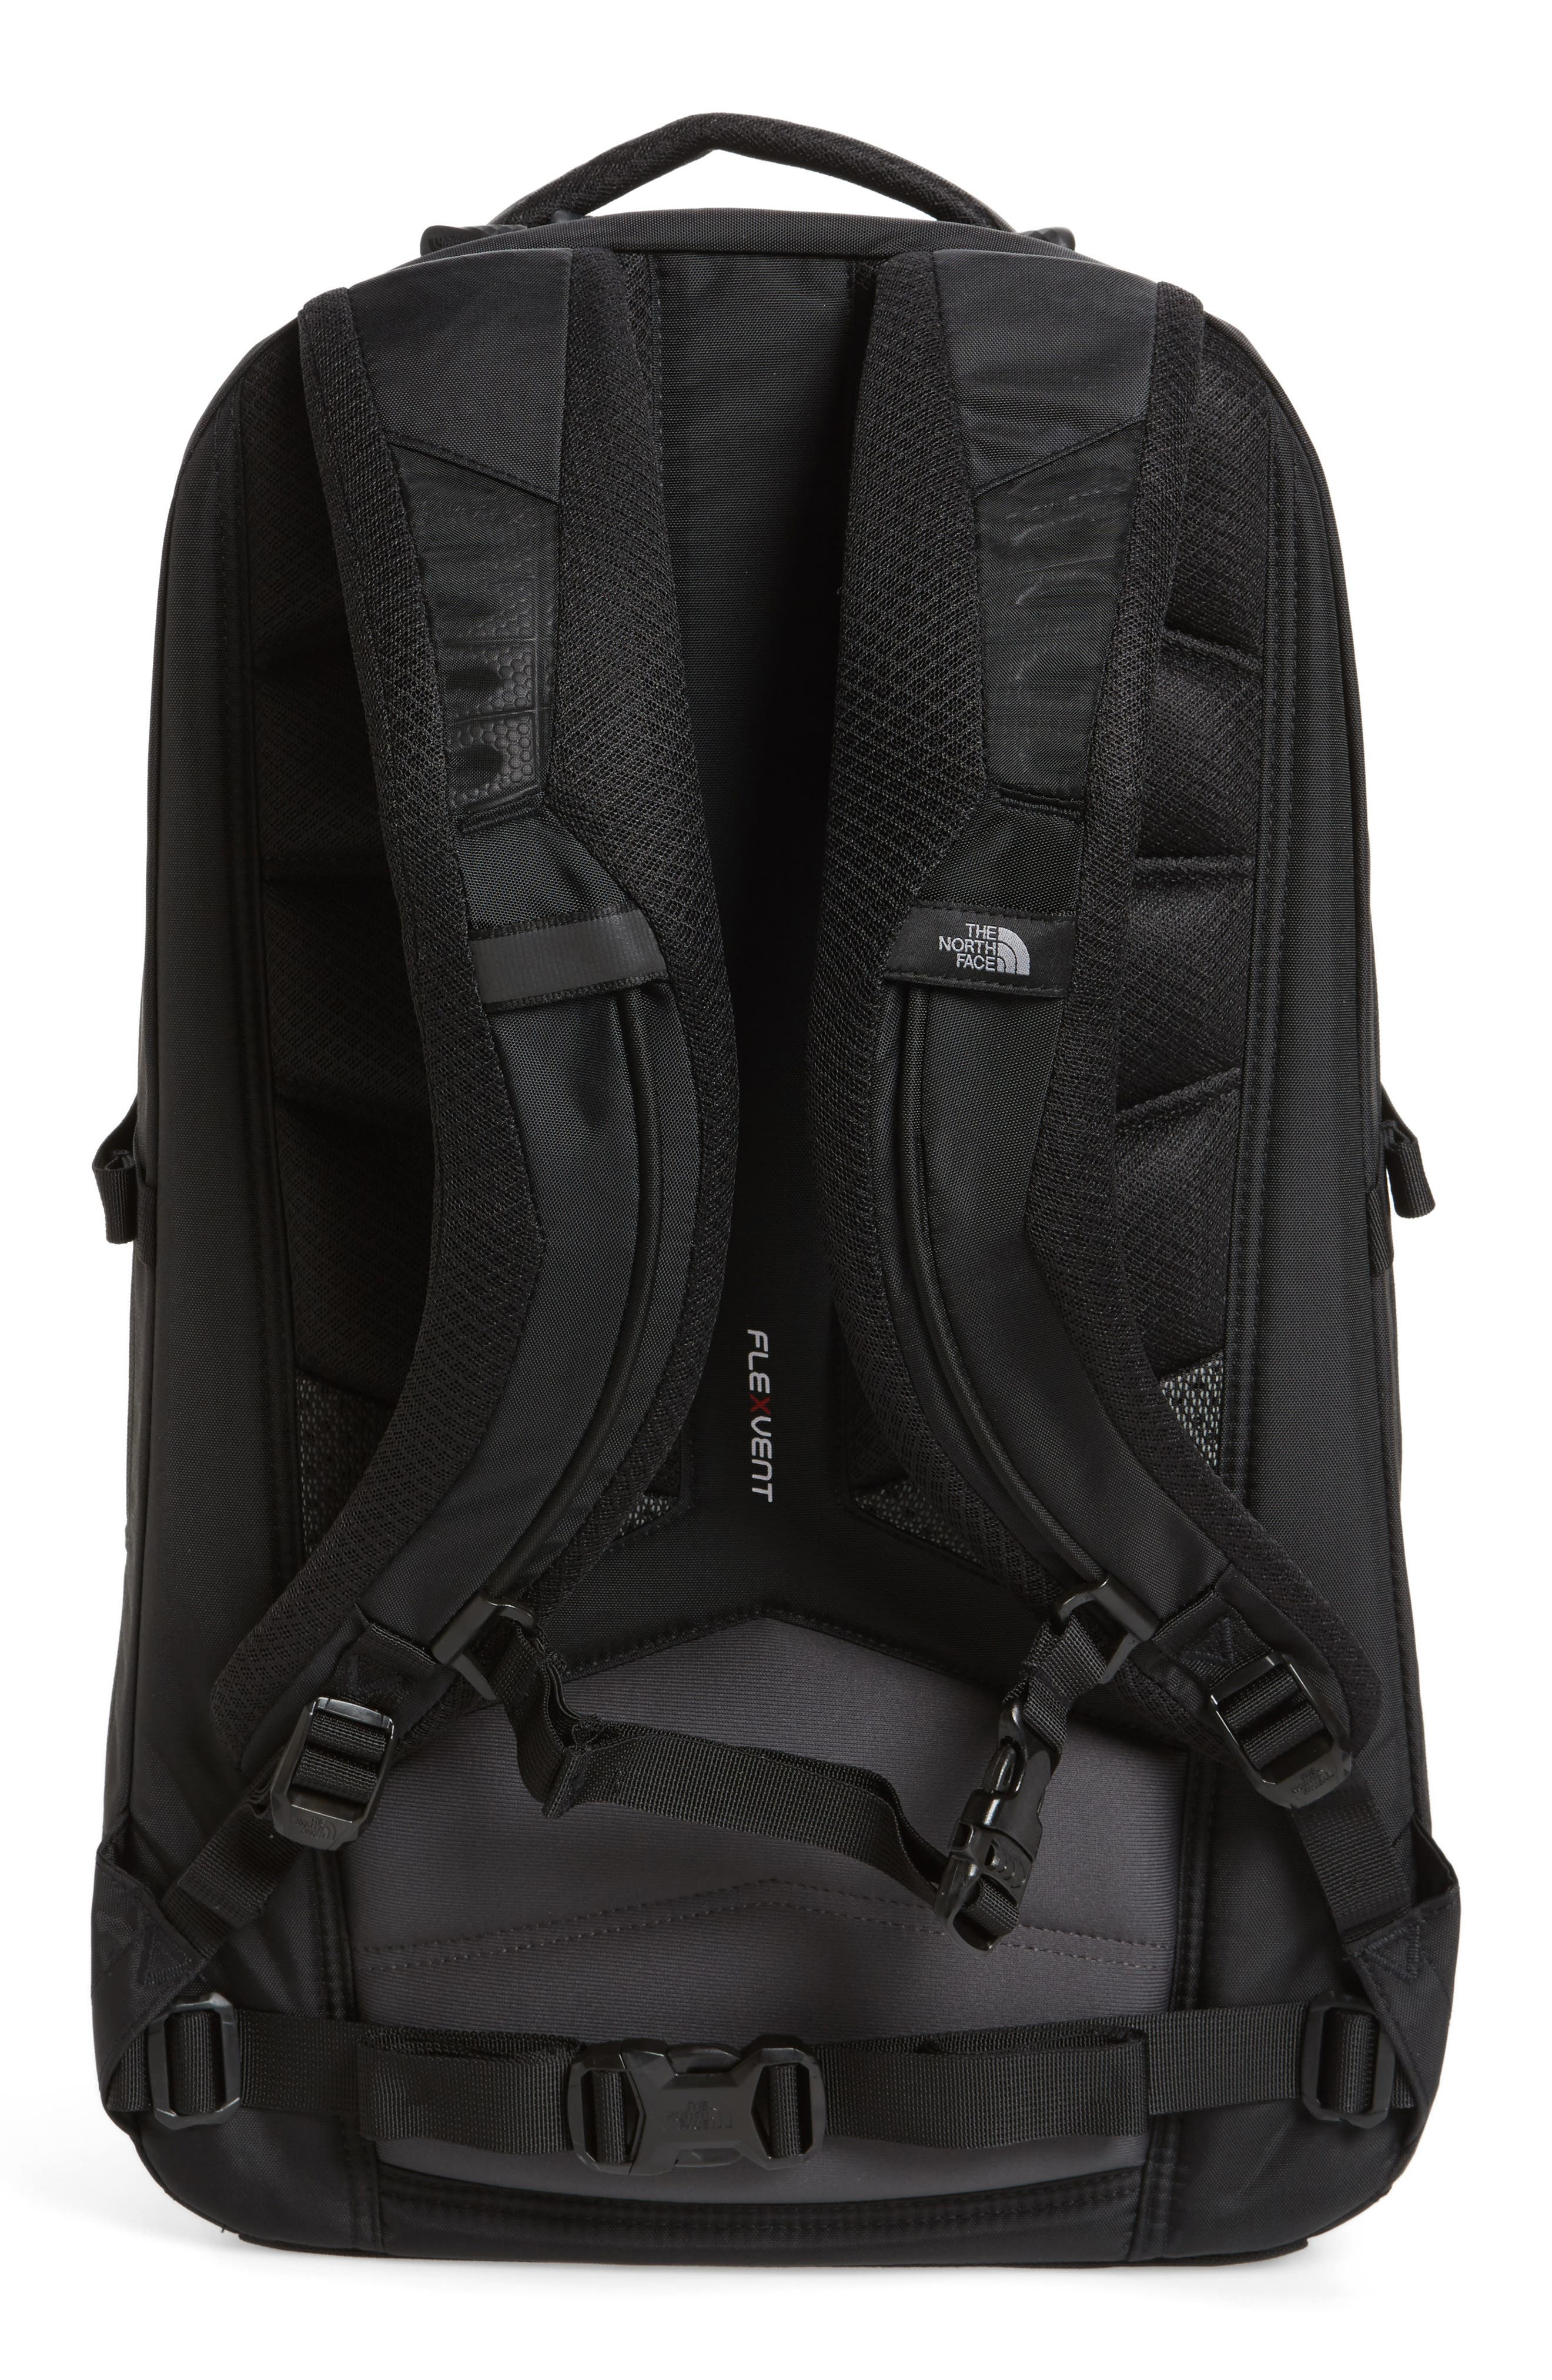 Router Backpack,                             Alternate thumbnail 7, color,